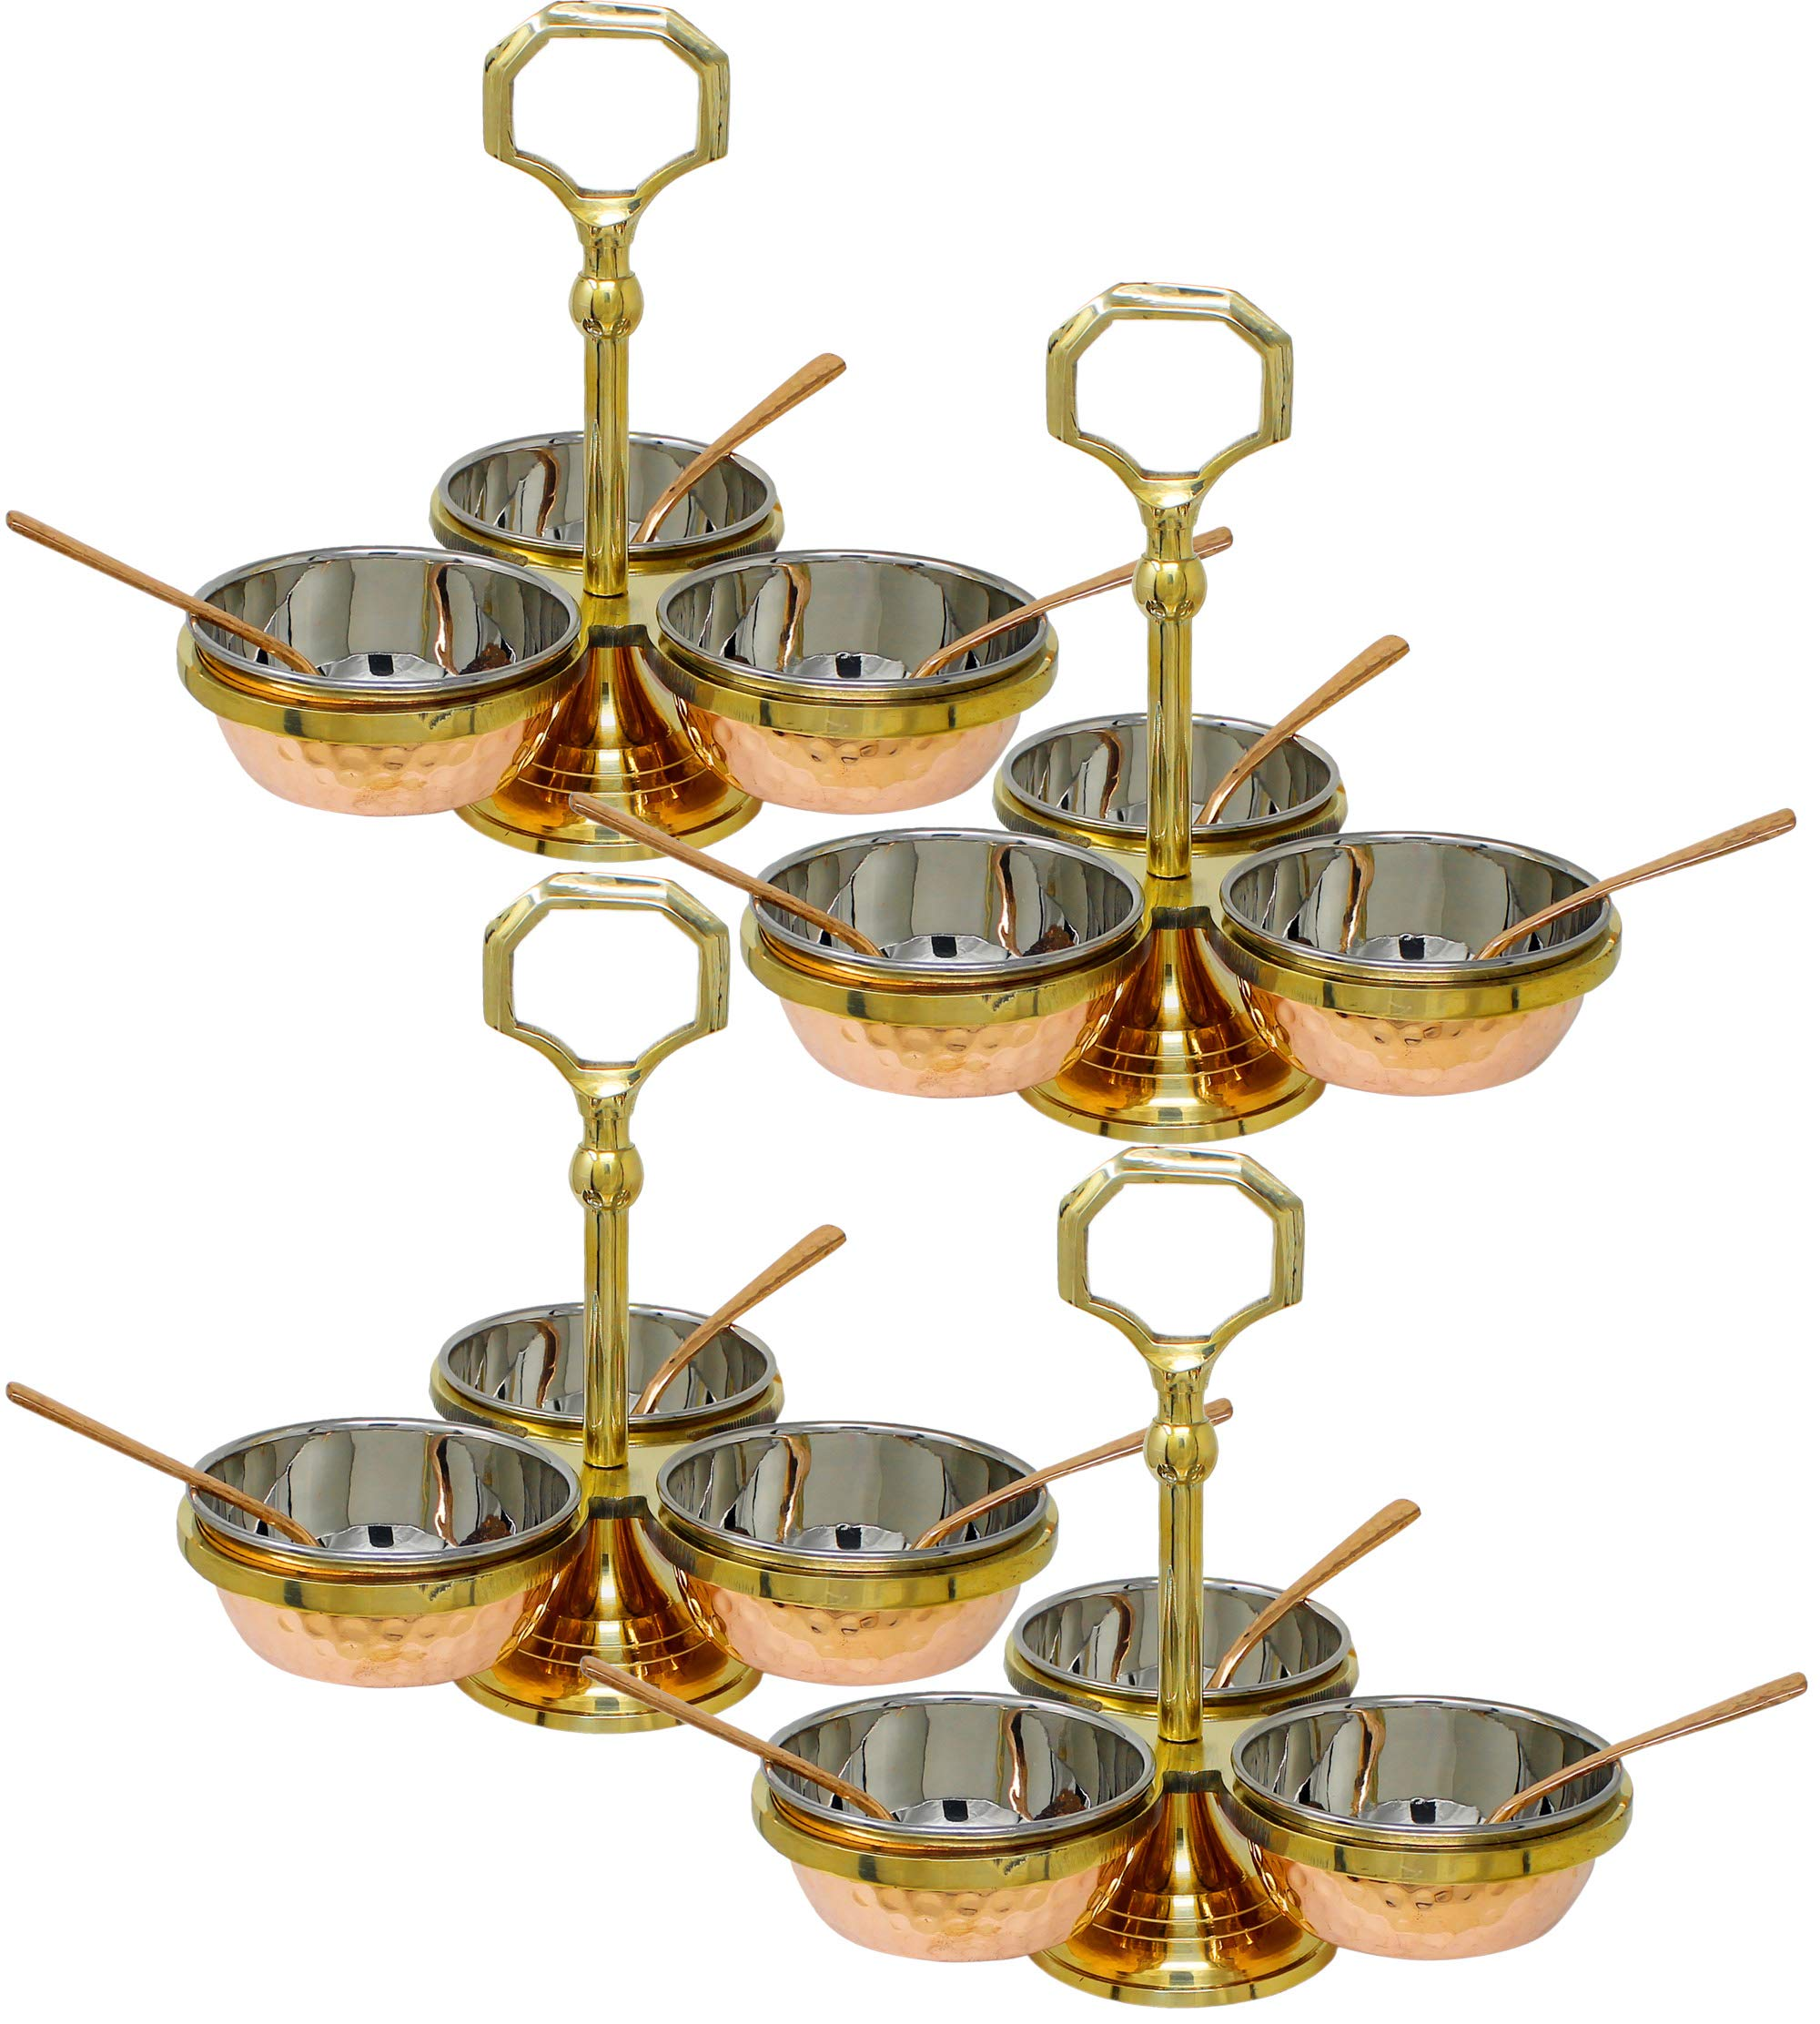 Set of 4, Condiment Dish Rack 3 Bowl Set - Stainless Steel Copper Pickle Set - Condiments, Nuts, Ice Cream, Snacks, Candy Serving Bowls